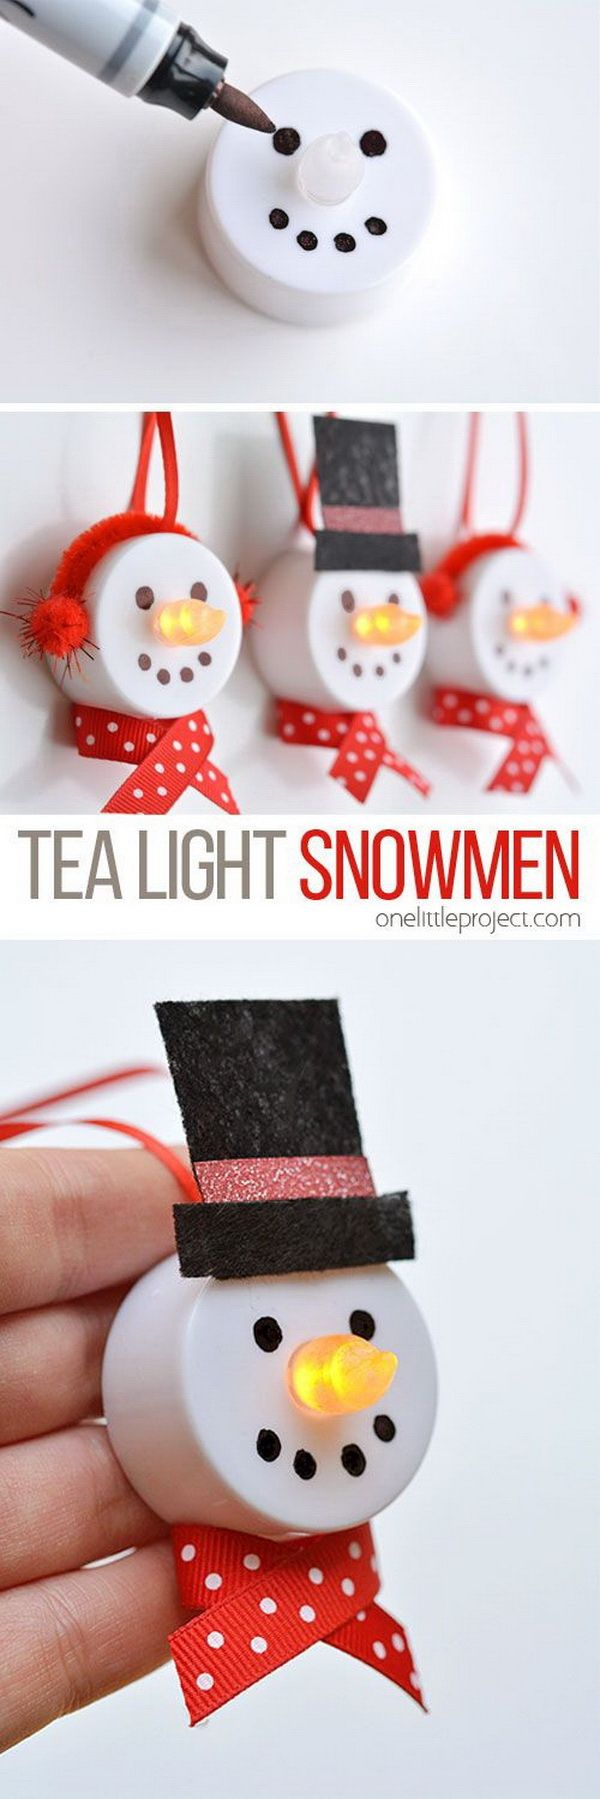 Tea Light Snowman Ornament.